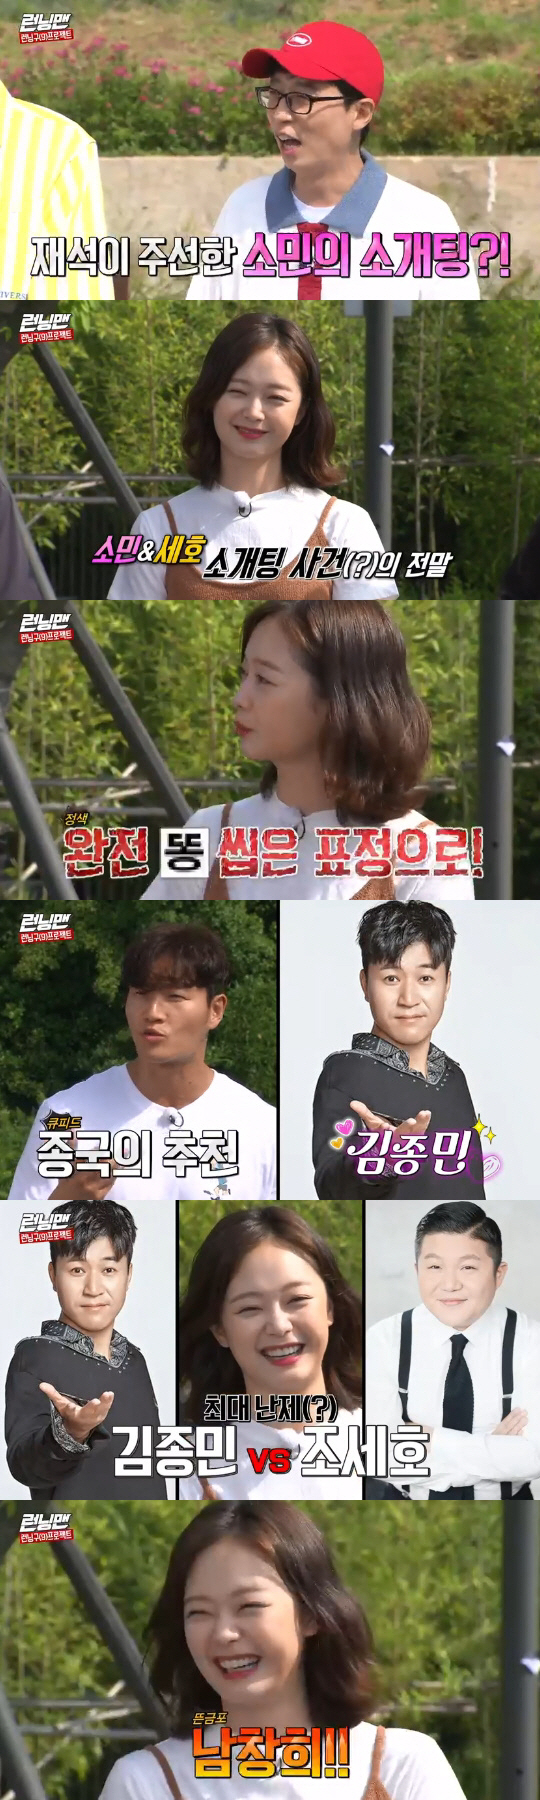 <p>23 afternoon broadcast of SBS Running Manin the members Jeon So-mins blind date for the stories shared.</p><p>Earlier, Yoo Jae Suk is the online content through the tax code to Jeon So-mins blind date offer, but the tax code Nanchang Hee mentioned and declined.</p><p>To this Yoo Jae Suk is the day unintentionally Jeon So-min to question 1 of the panel asafe to be about apples and the real what was not. Sorry,he said.</p><p>And Jeon So-min is a brother is broadcast is so good to talk to the law but completely shit chew expression was,said Tony.</p><p>This example is Kim Jong Kook Kim Jong people have recommended, and Jeon So-min is the soul without expression as good,he replied.</p><p>The Jeon So-min is Kim Jong the people and the tax code among the more want to meet a blind date, opponent and say Nanchang Heehe exclaimed. Then, in the Nanchang Hee the song well, well,he said.</p><p>But Kim Jong Kook is often the people most of the people. And silly, its not fine,he claims by laughter, I found myself in.</p>